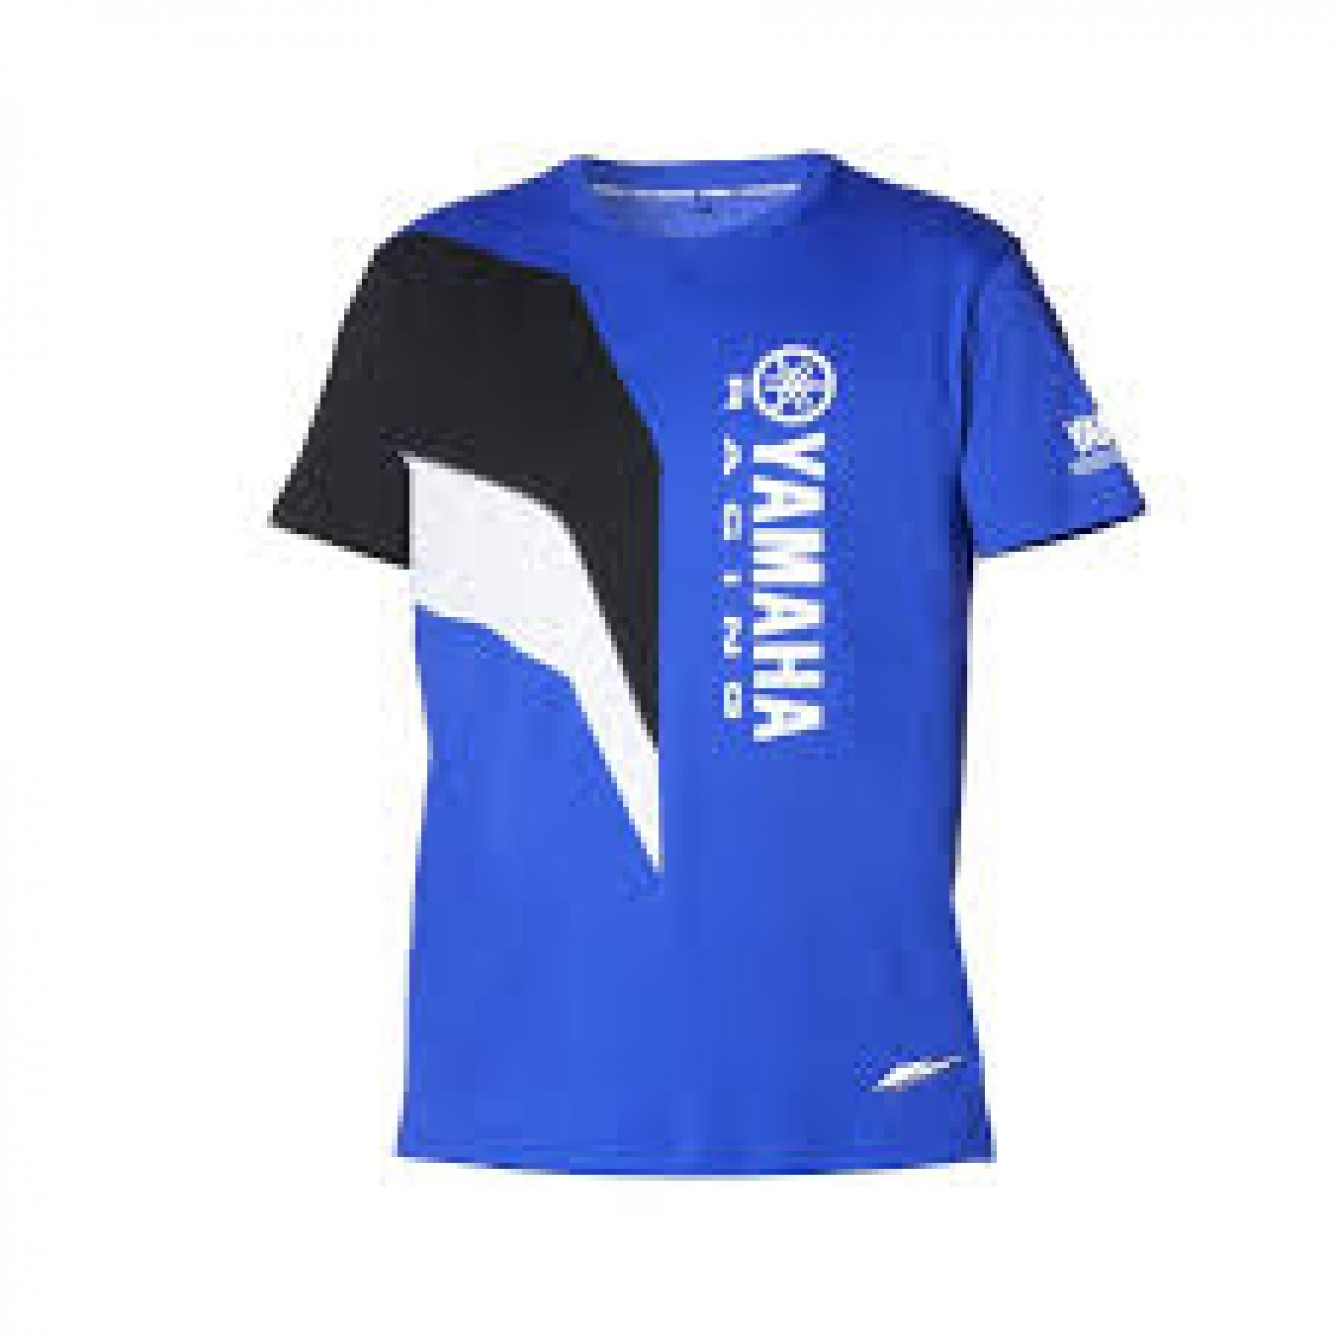 Yamaha Movistar T Shirt